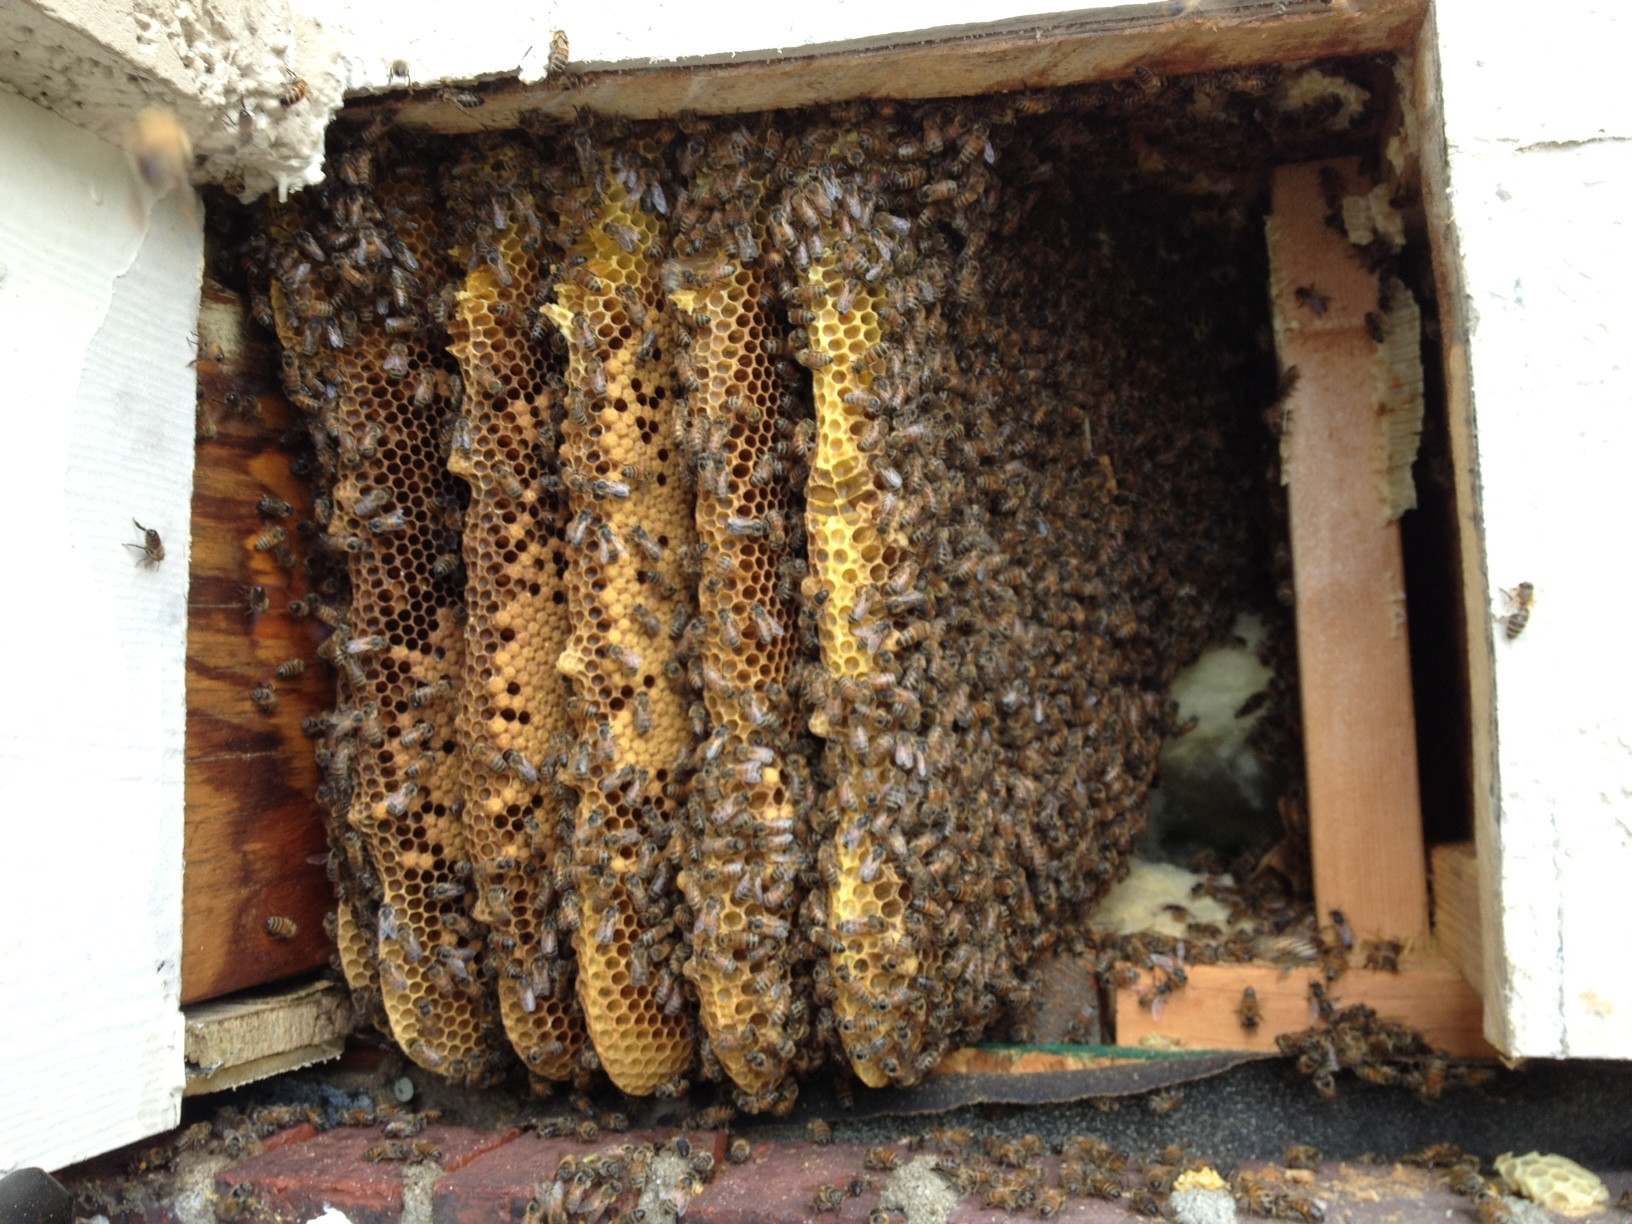 There's no way this hive is up to code. I see an eviction notice in their future.